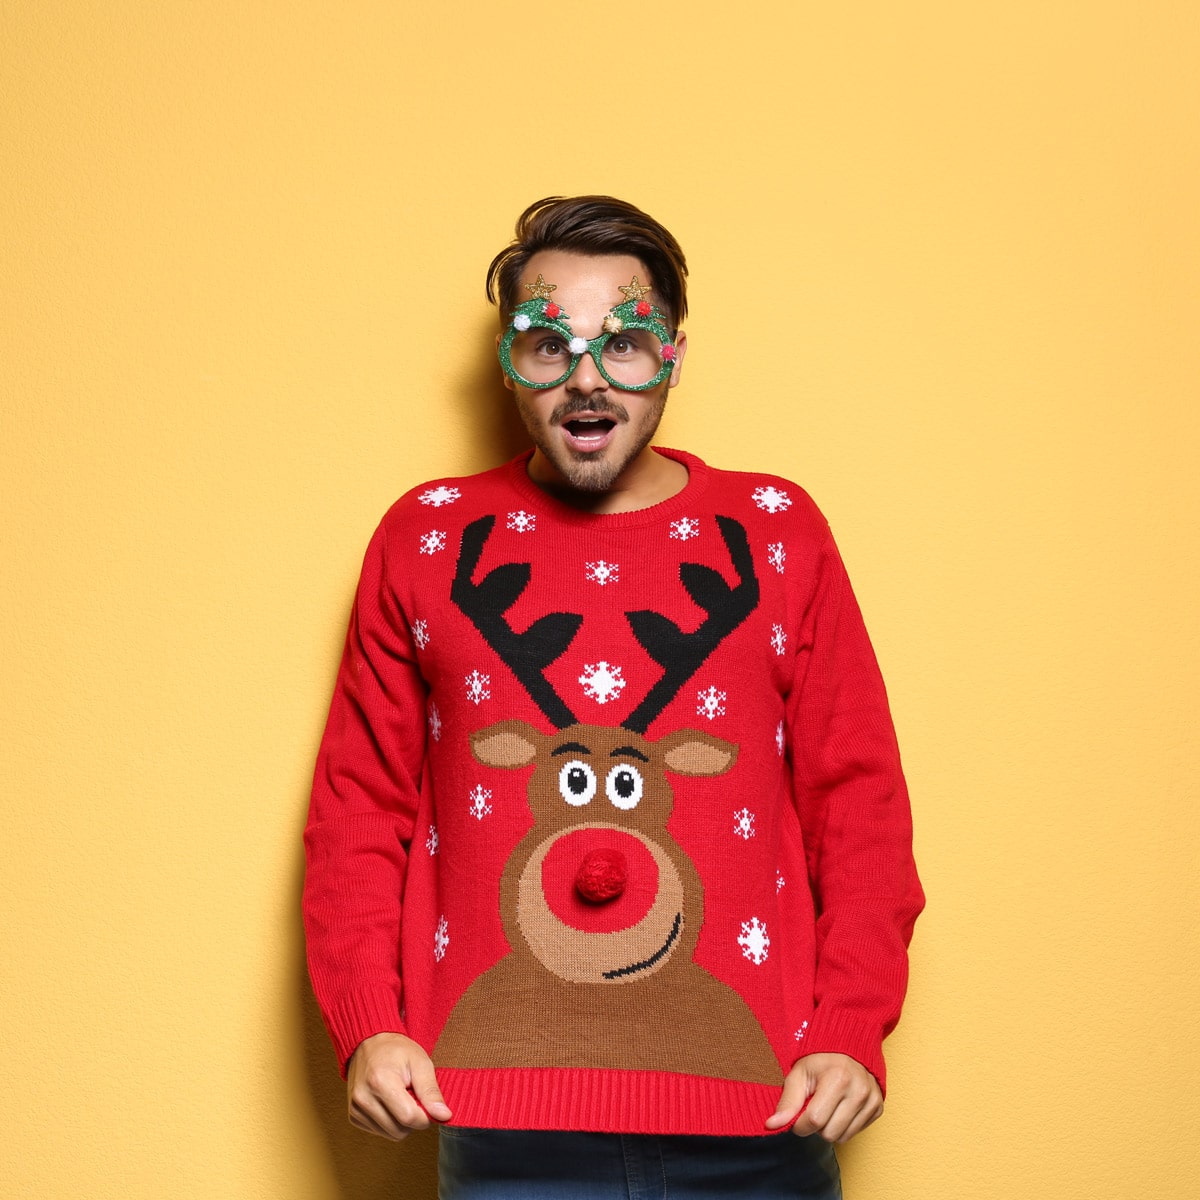 Ugly Christmas Sweater Day 2020, NATIONAL UGLY SWEATER DAY   December 20, 2020 | National Today